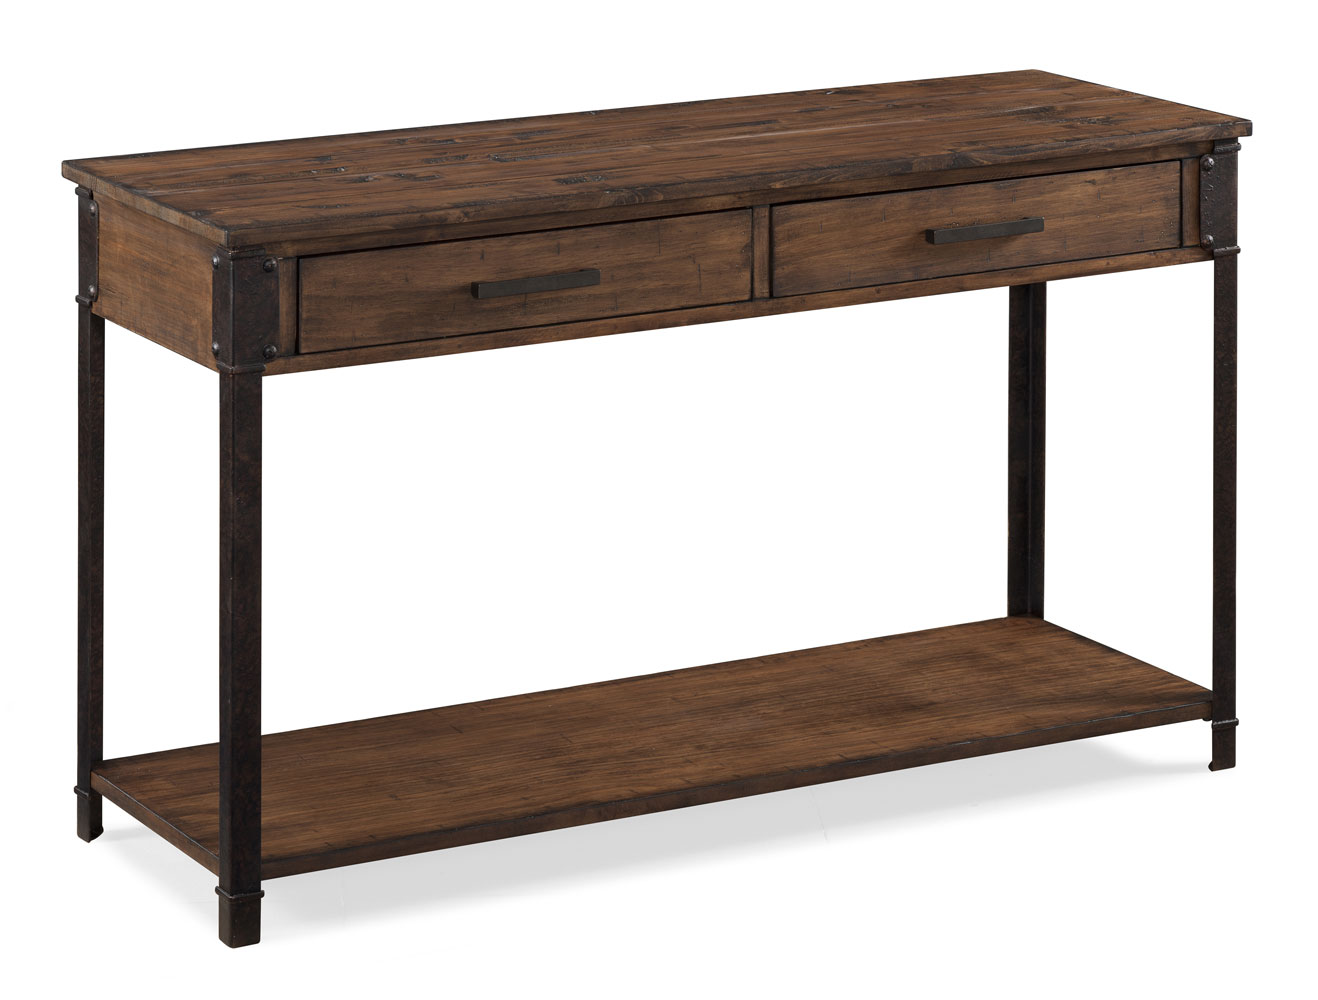 Larkin Rectangular Sofa Table Natural Pine T2017 73